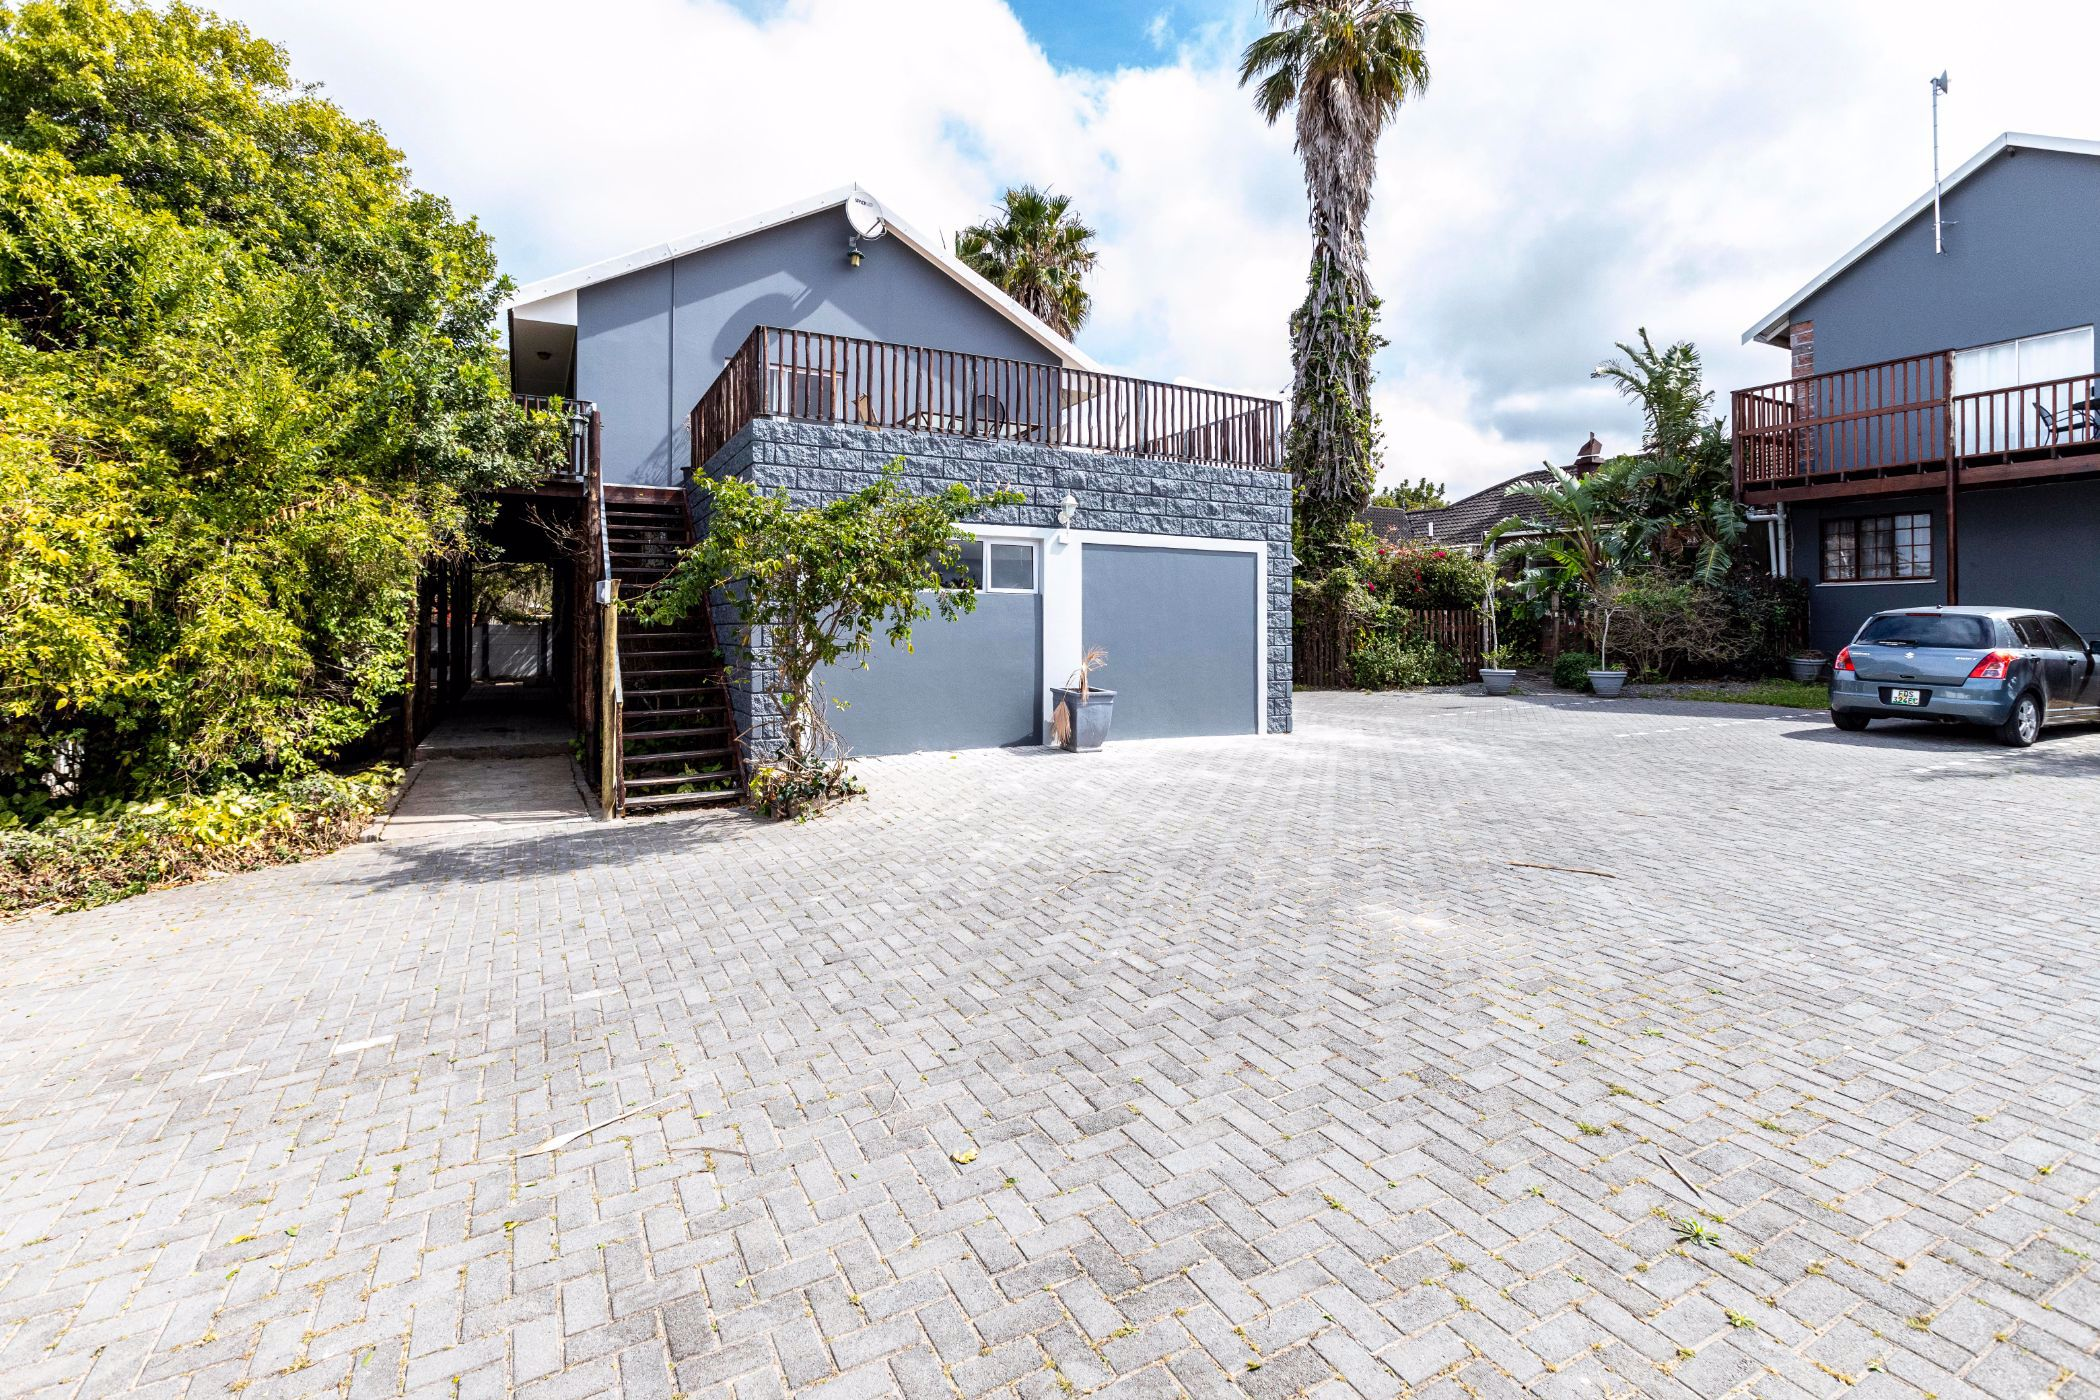 9 bedroom house for sale in Beacon Bay